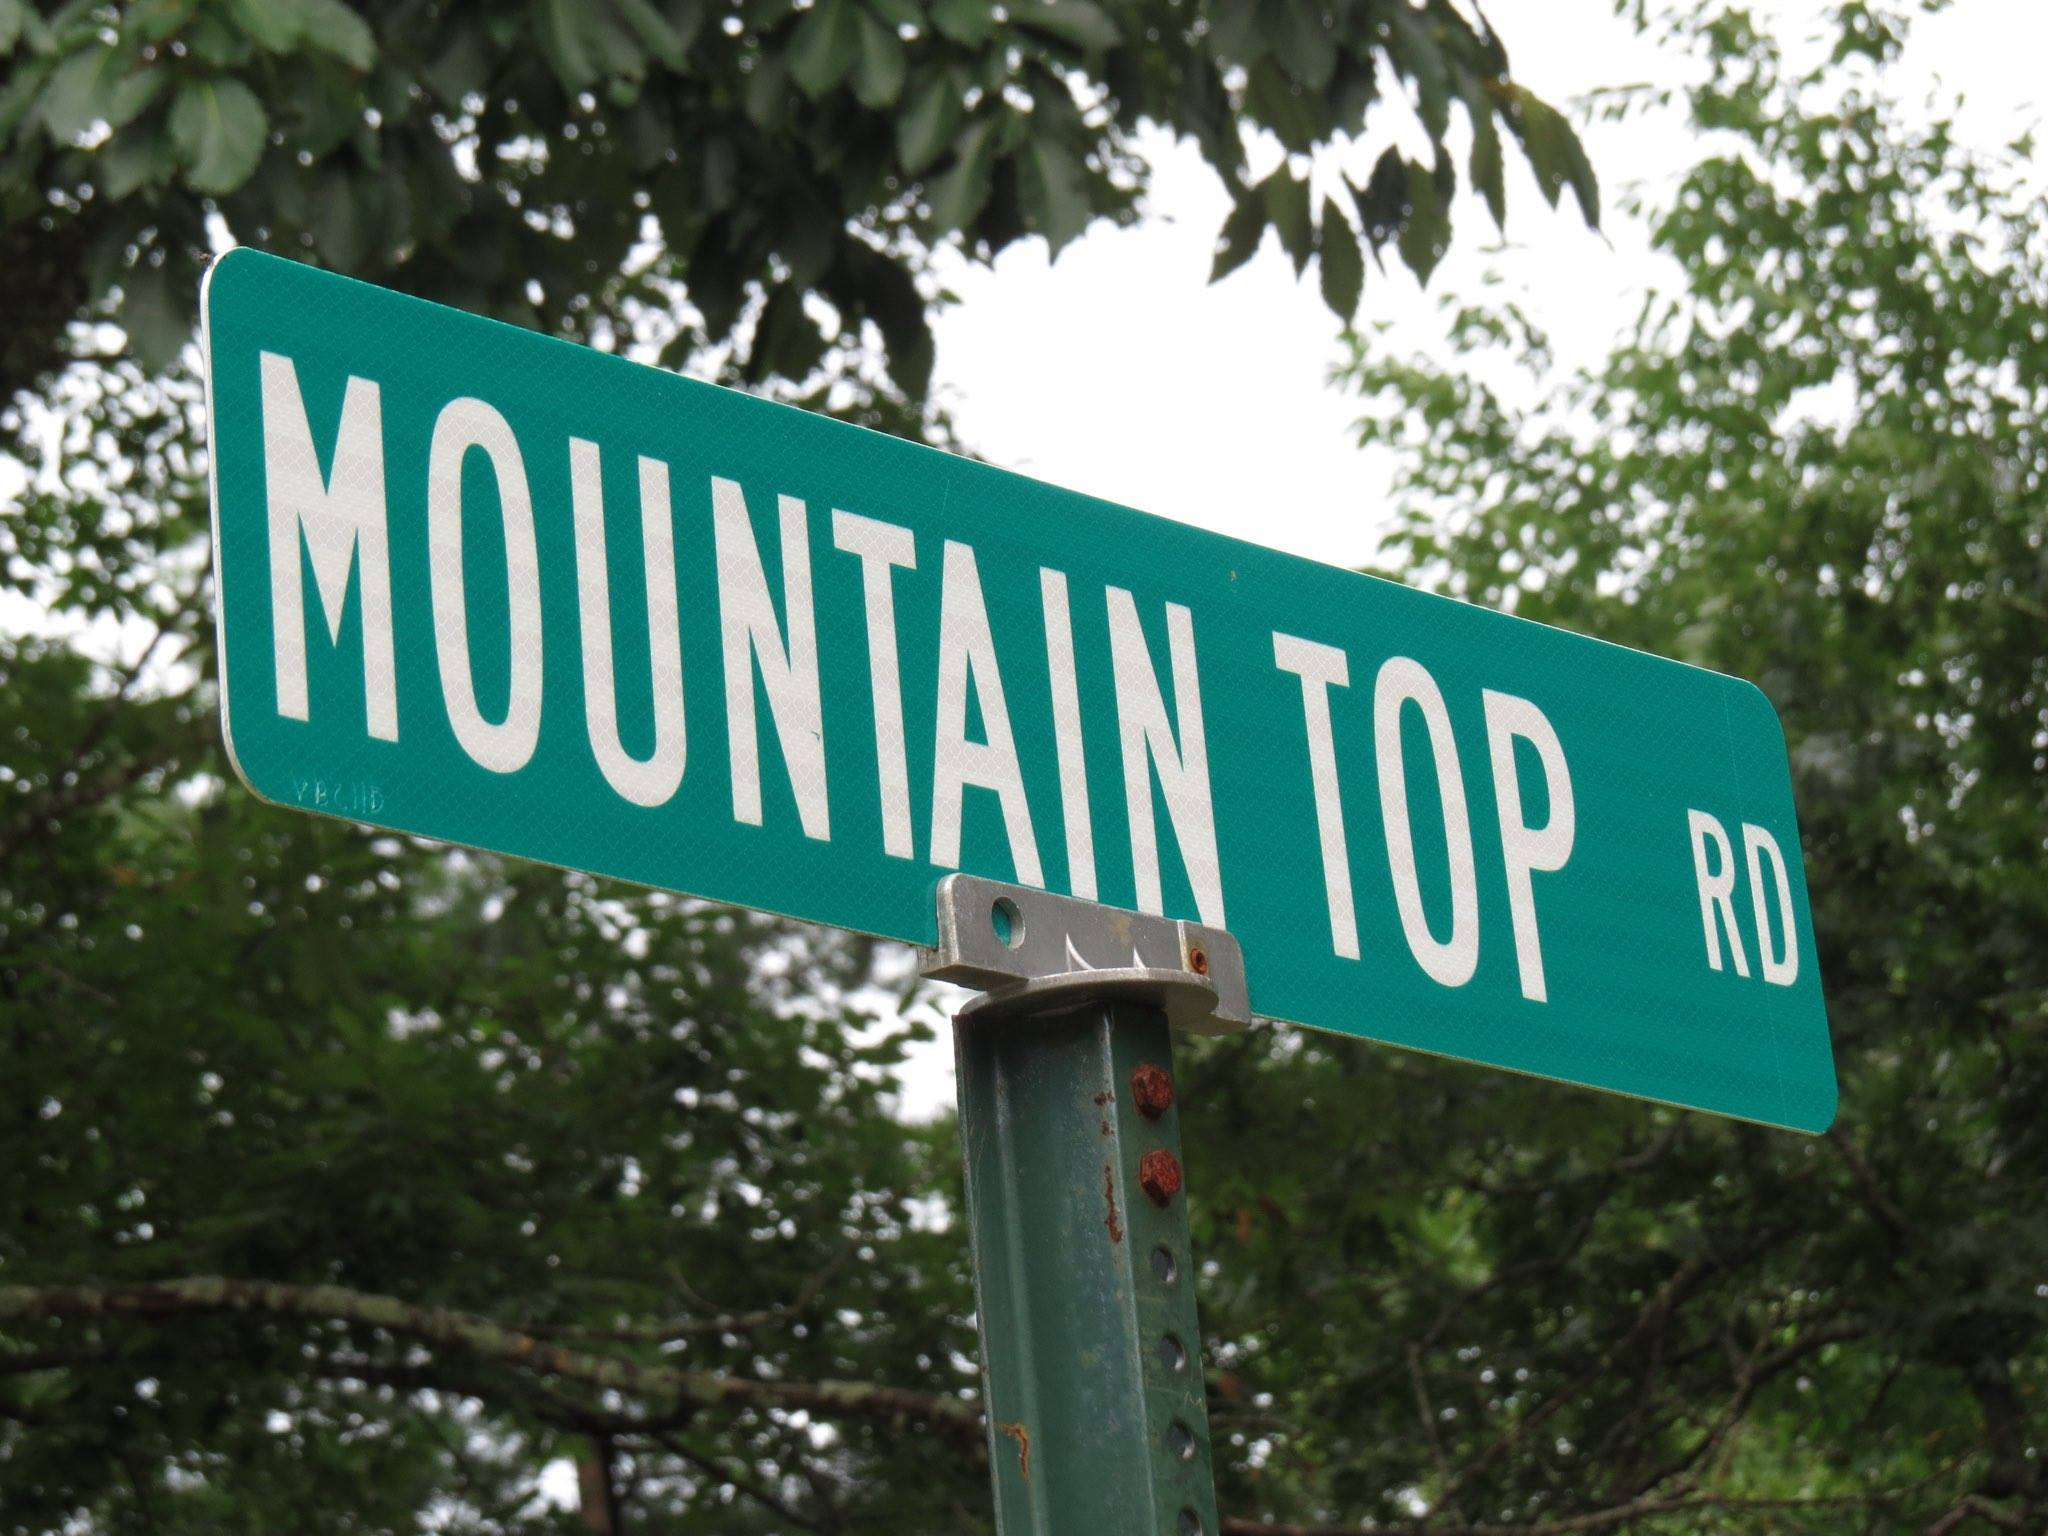 Mountain Top street sign